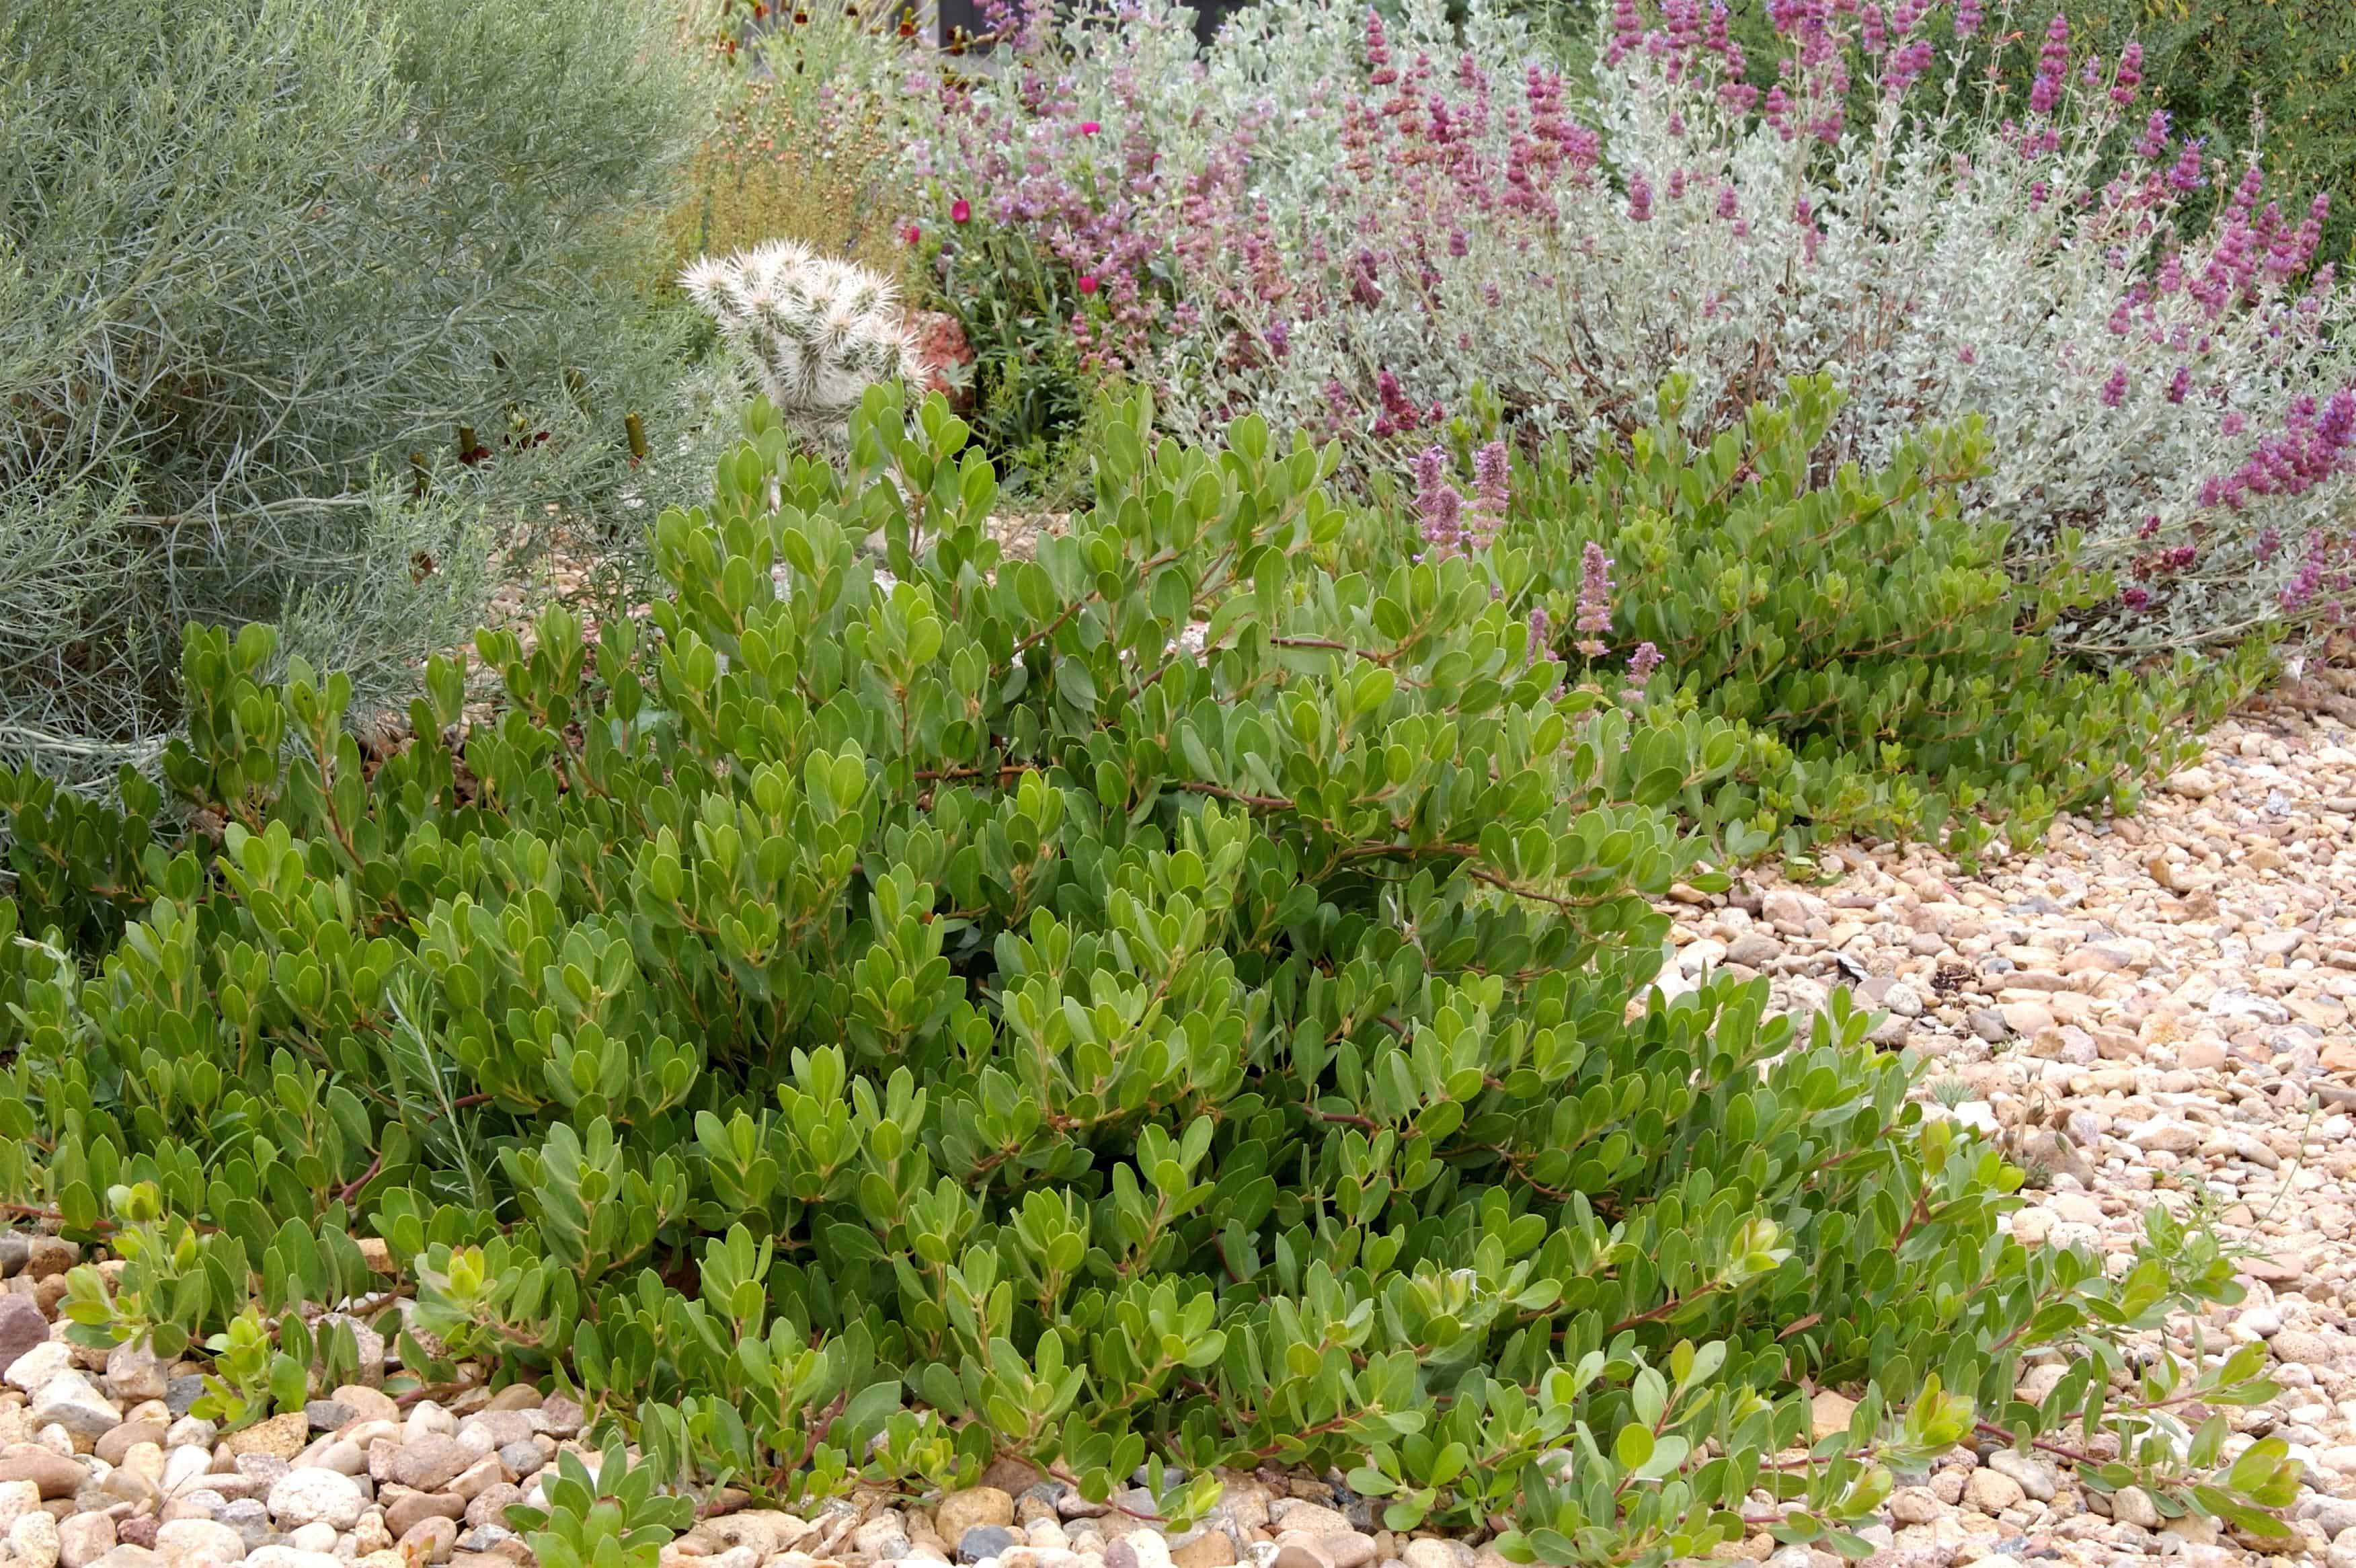 Arctostaphylos-x-coloradoensis-Panchito-2-D.-Winger